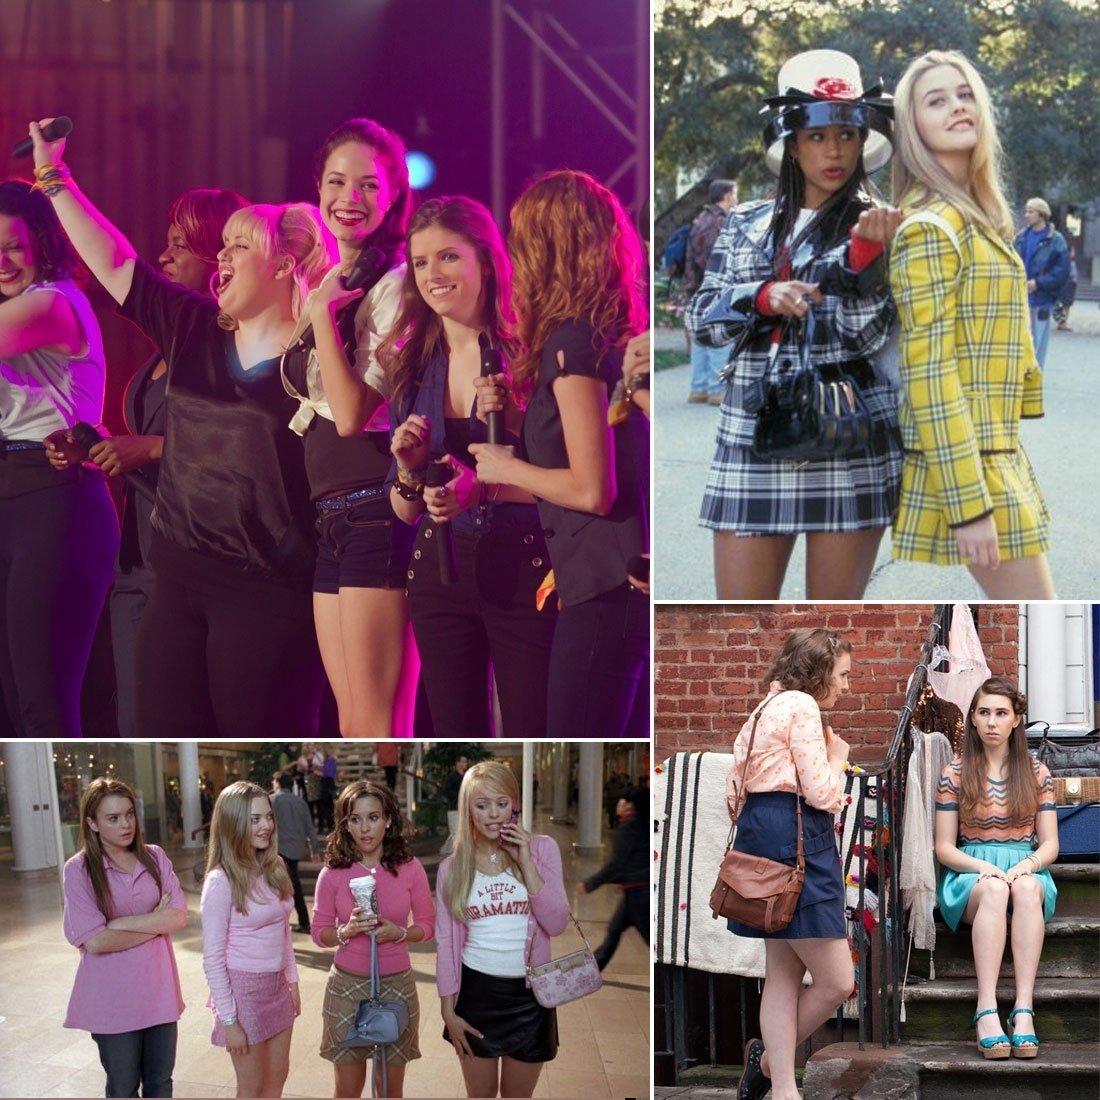 10 Elegant Costume Ideas For Groups Of 4 dont be clueless 6 group costume ideas that are pitch perfect for 1 2020